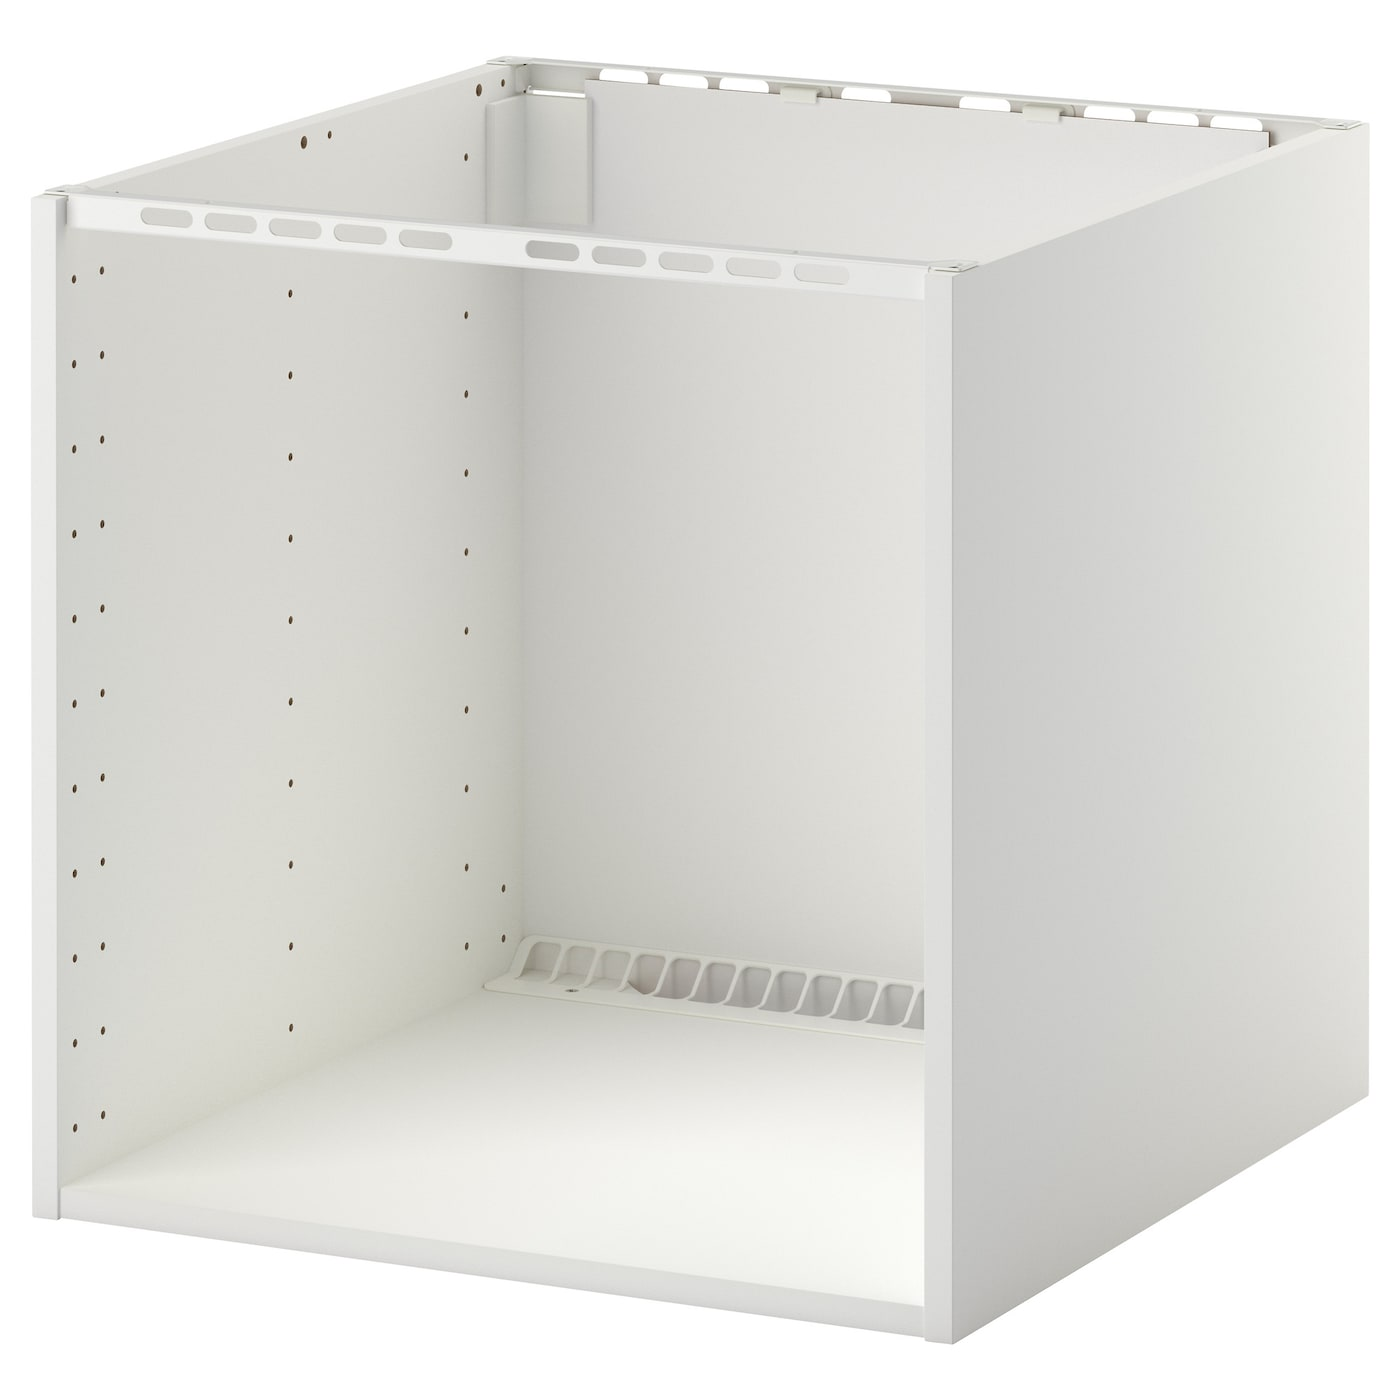 Metod cabinet for built in hob sink white 60x60x60 cm ikea for Ikea kuche metod